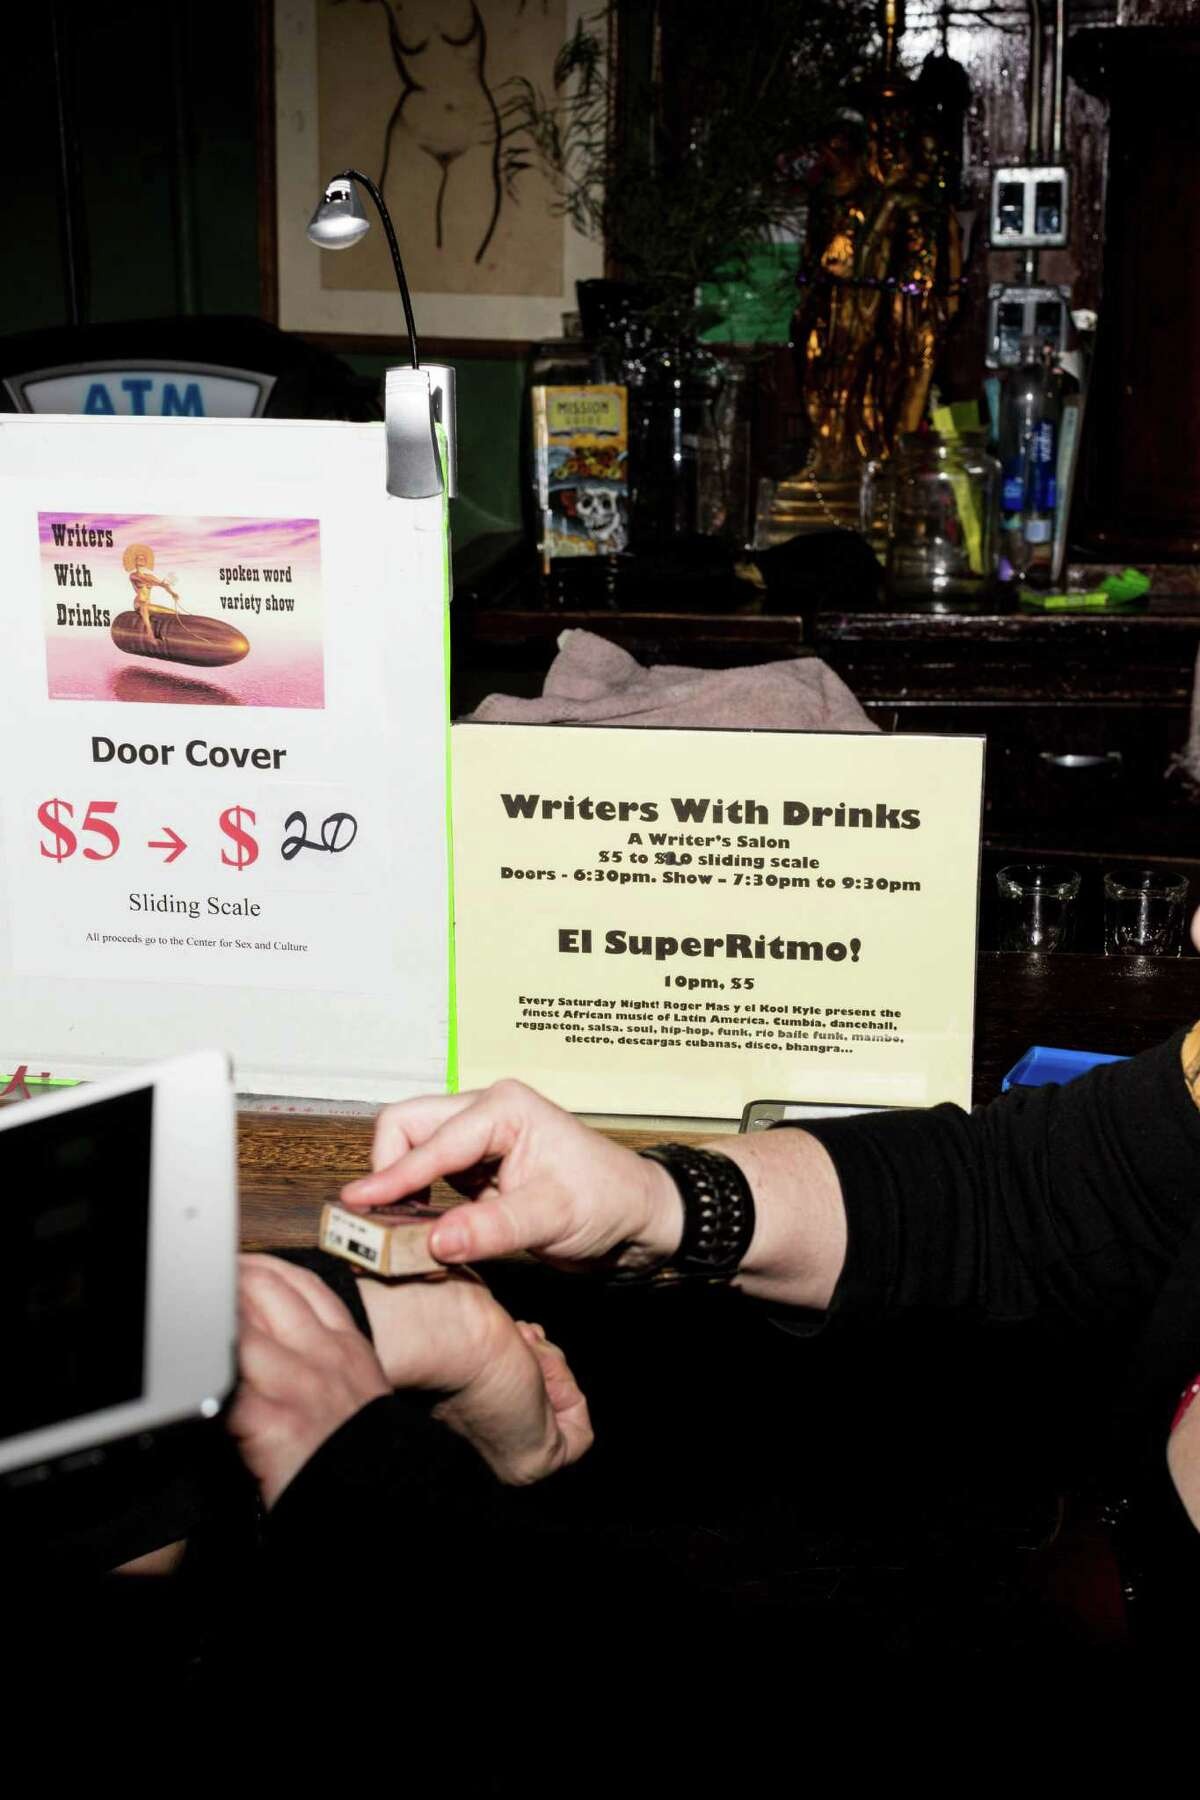 Writers With Drinks is a monthly event held at the Make Out Room in S.F.